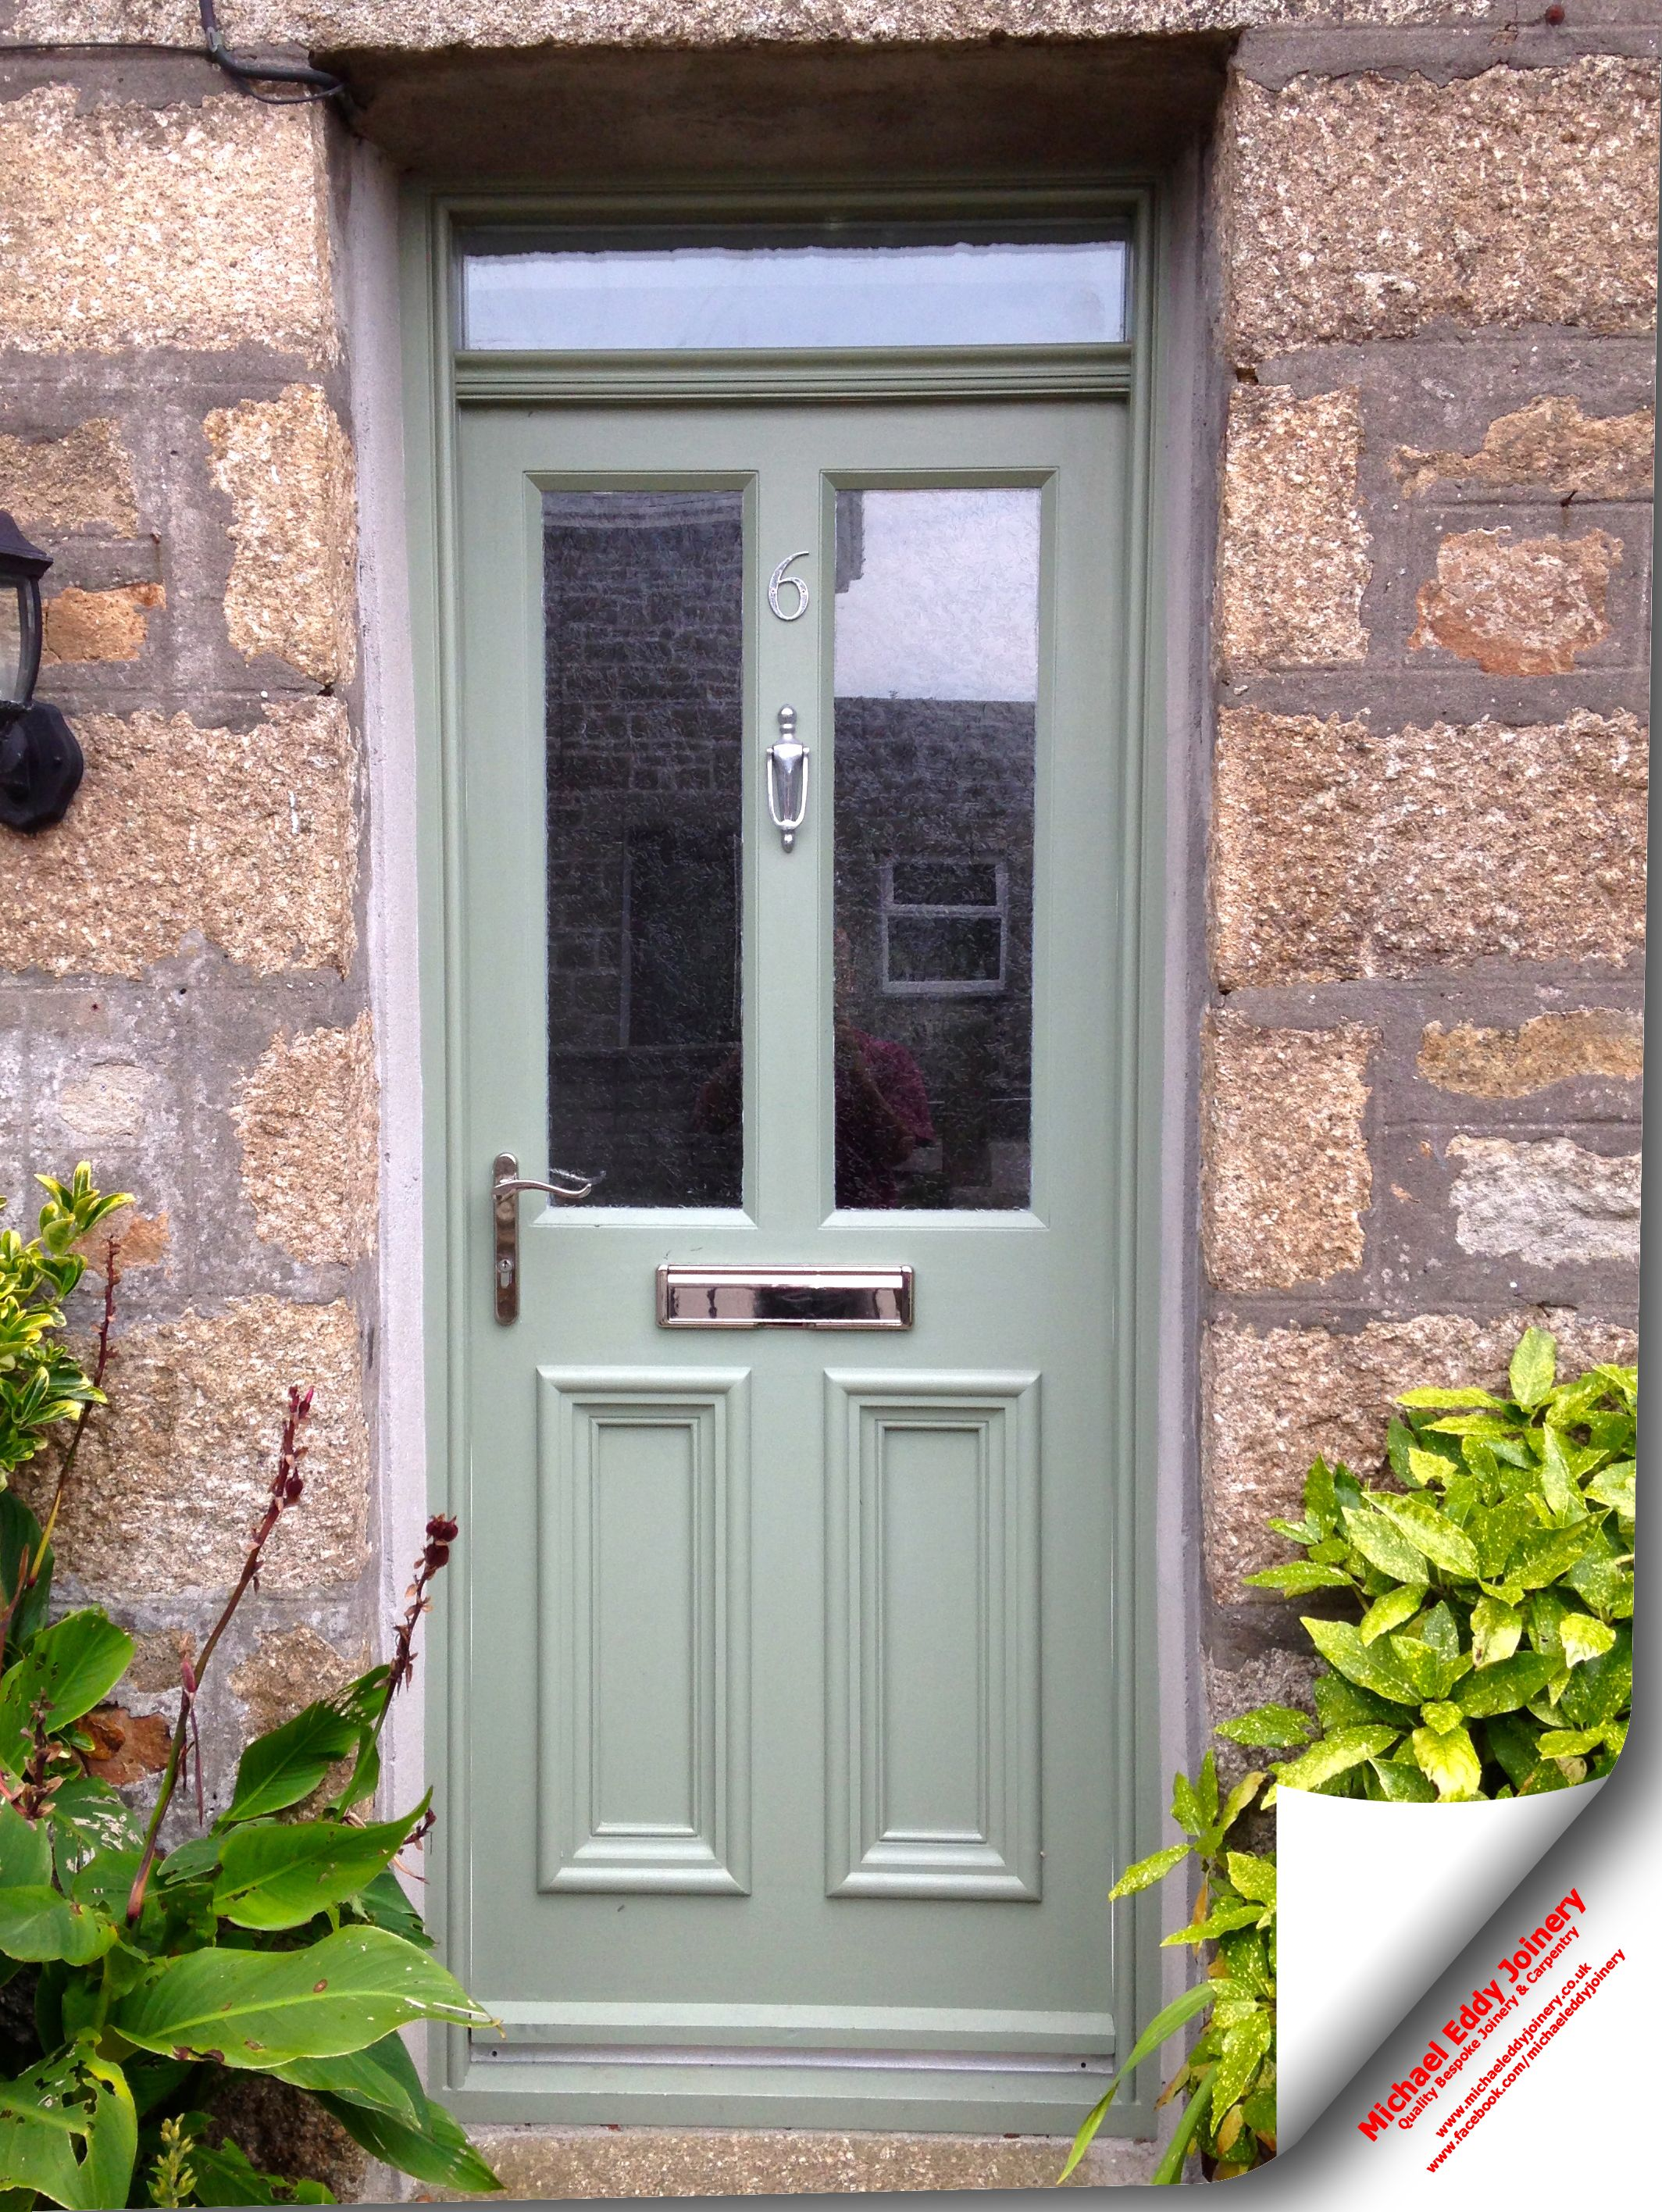 Idigbo victorian front door. supplied and fitted with multi point ...